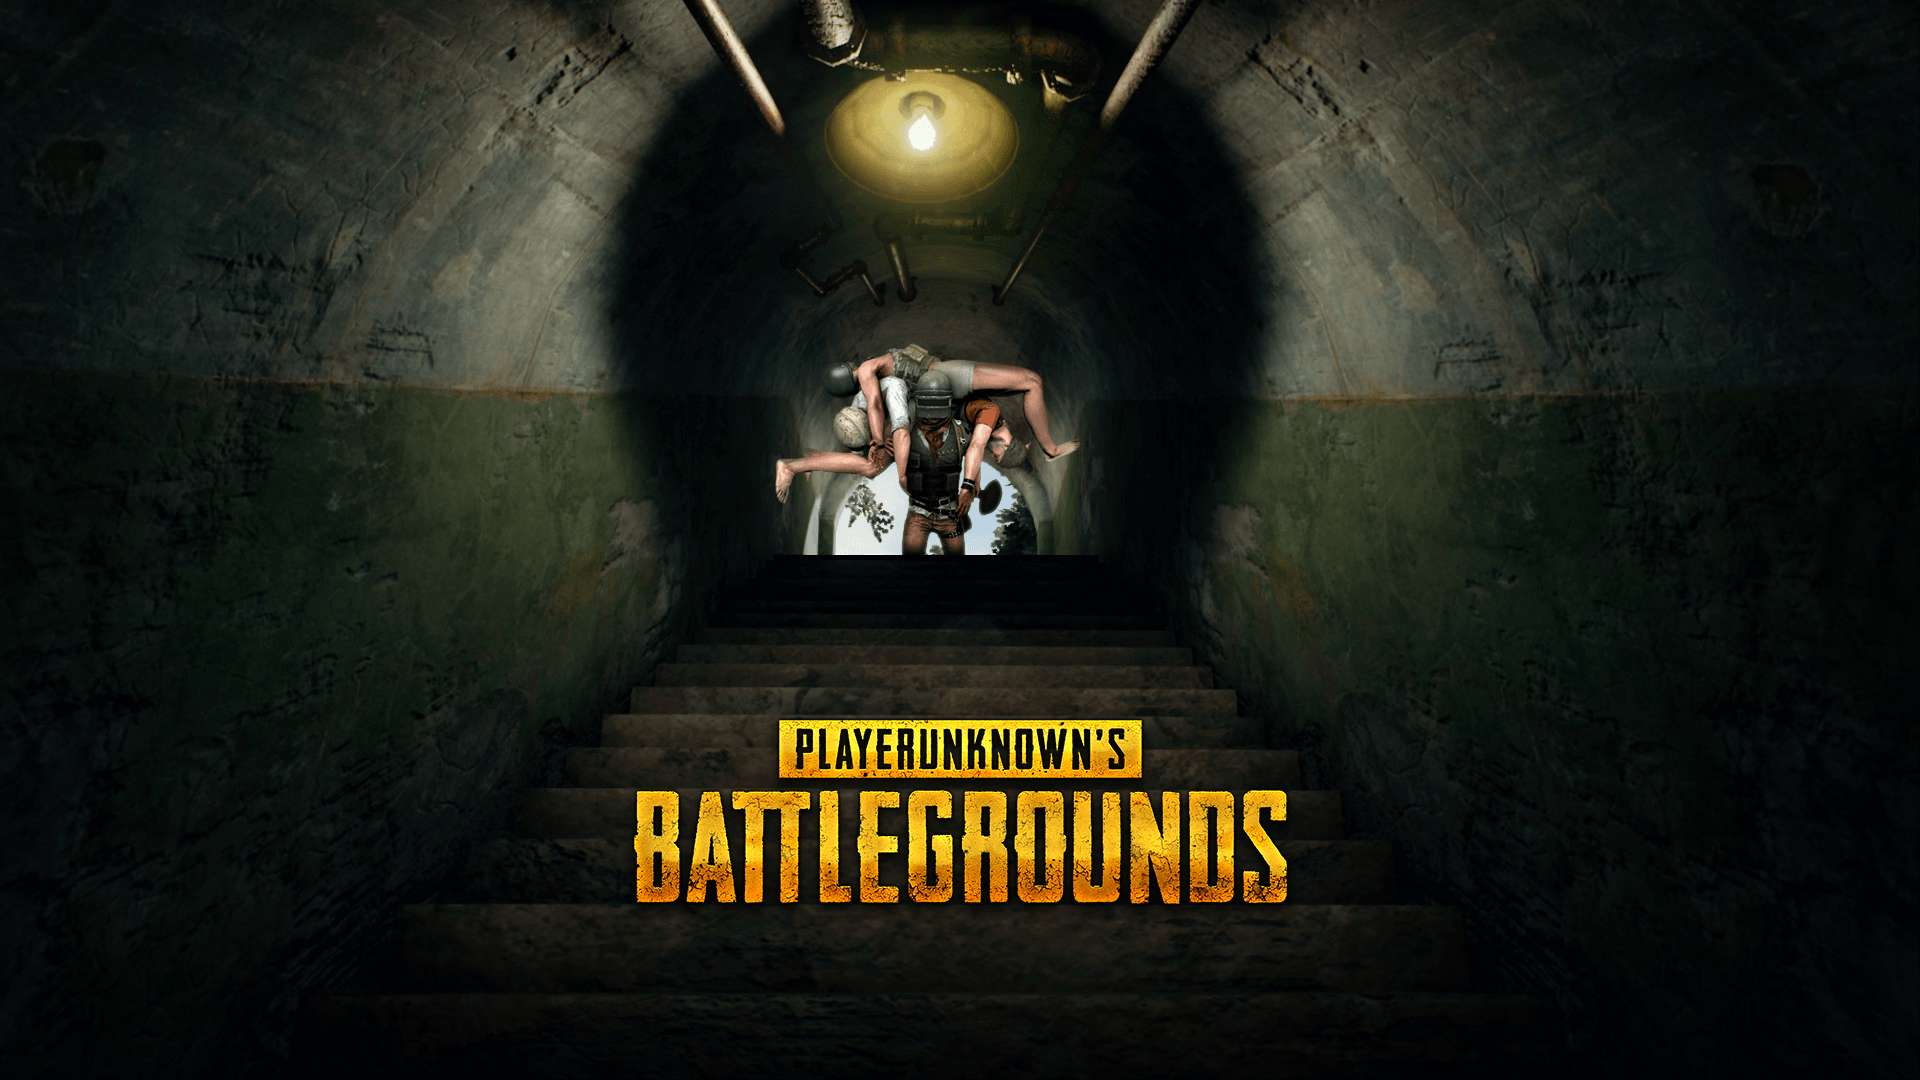 Pubg Wallpaper Iphone 6 Plus: Wallpaper Pubg 4k Iphone